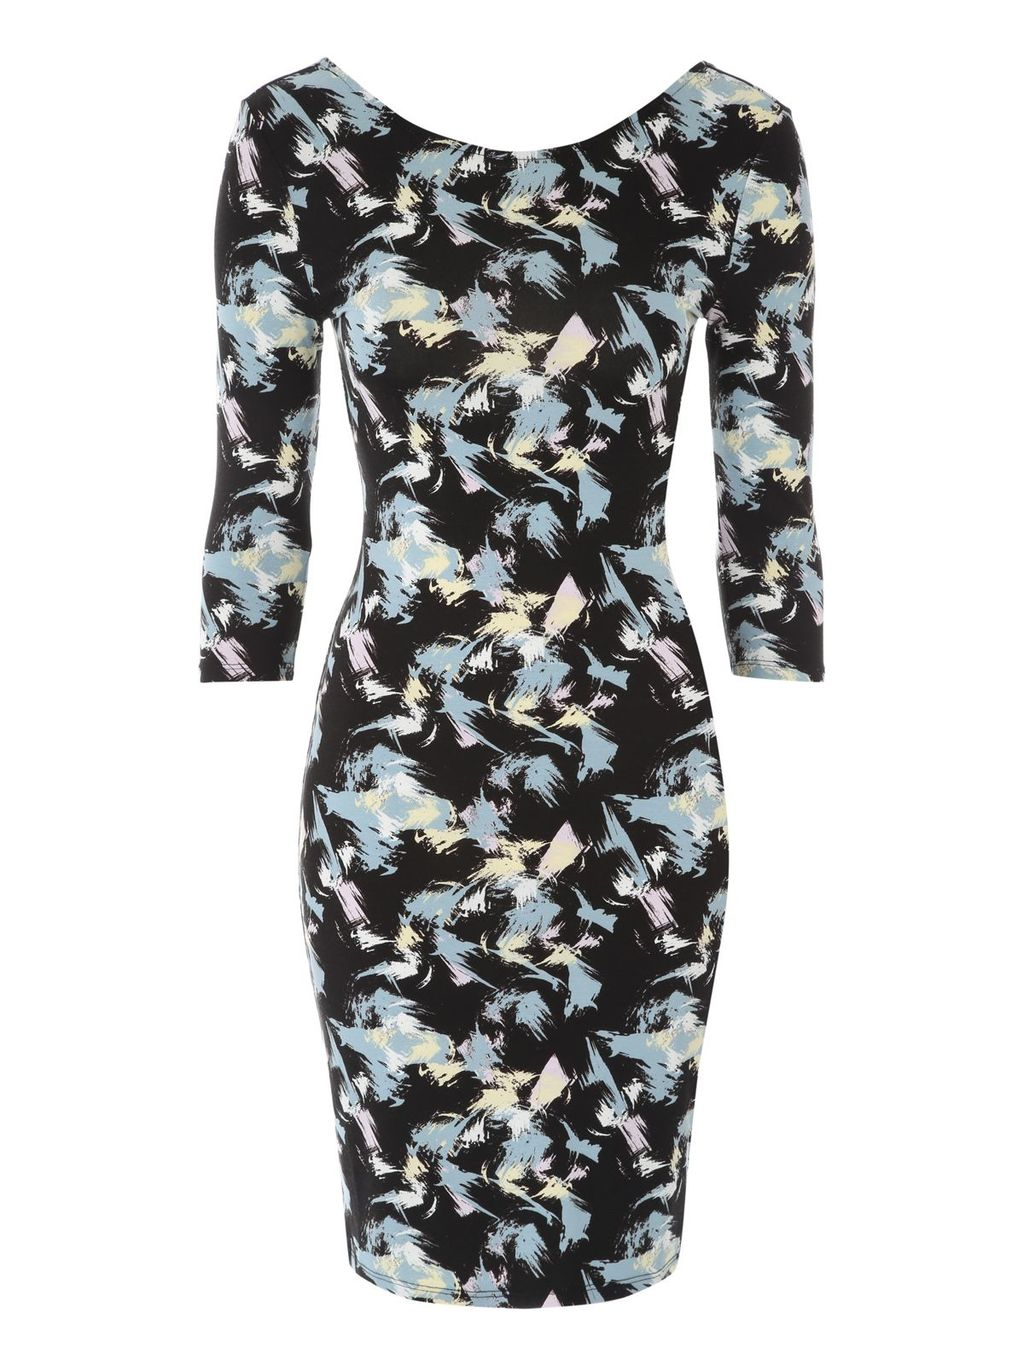 Brush Stroke Jersey Dress, Black - length: mini; fit: tight; pattern: plain; style: bodycon; secondary colour: pale blue; predominant colour: black; occasions: evening; neckline: scoop; fibres: polyester/polyamide - stretch; sleeve length: 3/4 length; sleeve style: standard; pattern type: fabric; texture group: jersey - stretchy/drapey; multicoloured: multicoloured; season: a/w 2015